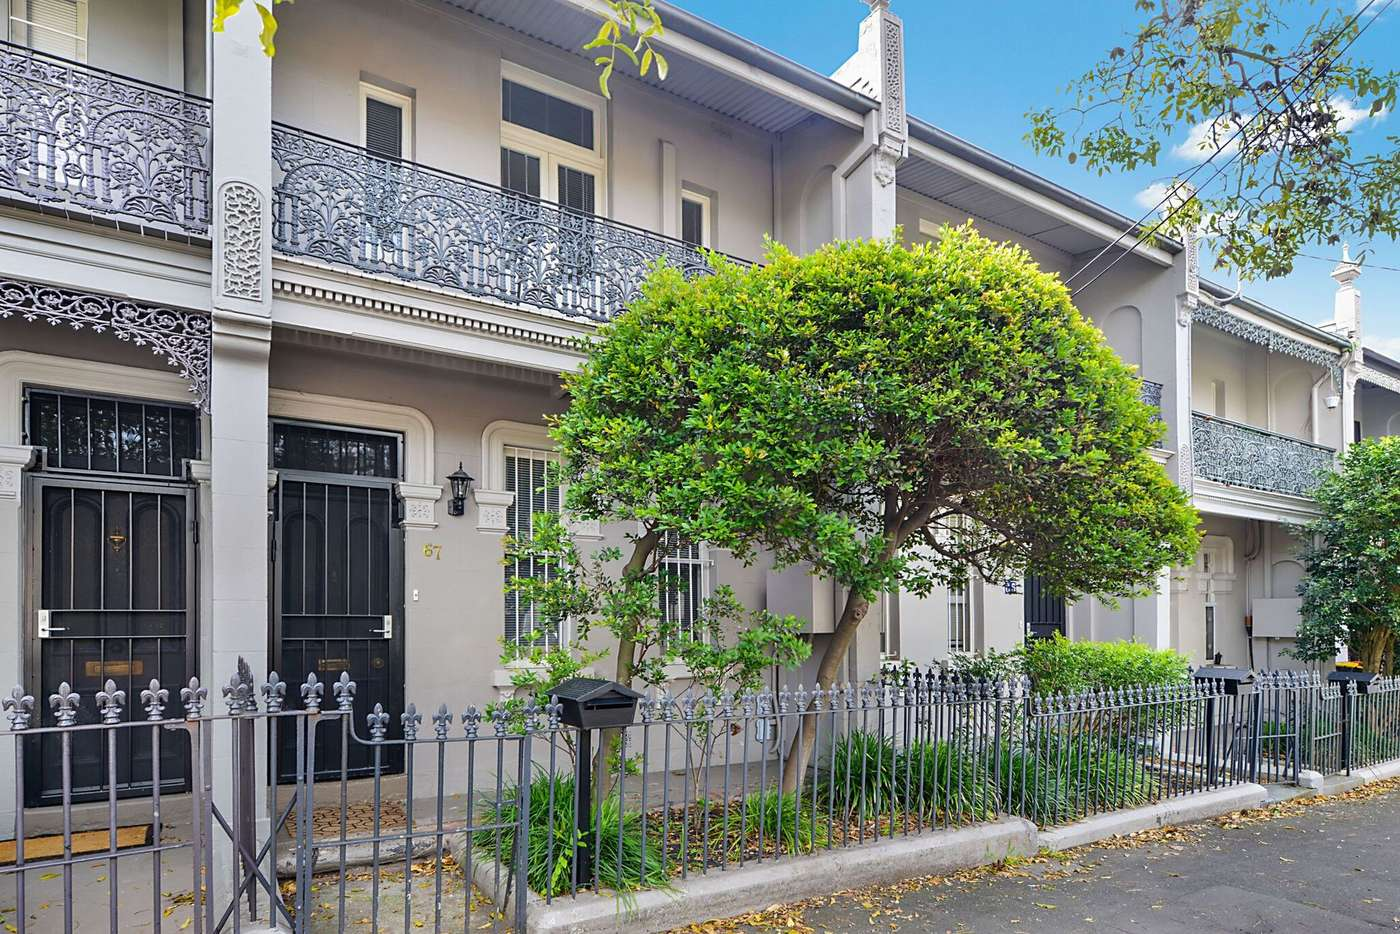 Main view of Homely terrace listing, 67 Boundary Street, Darlinghurst NSW 2010